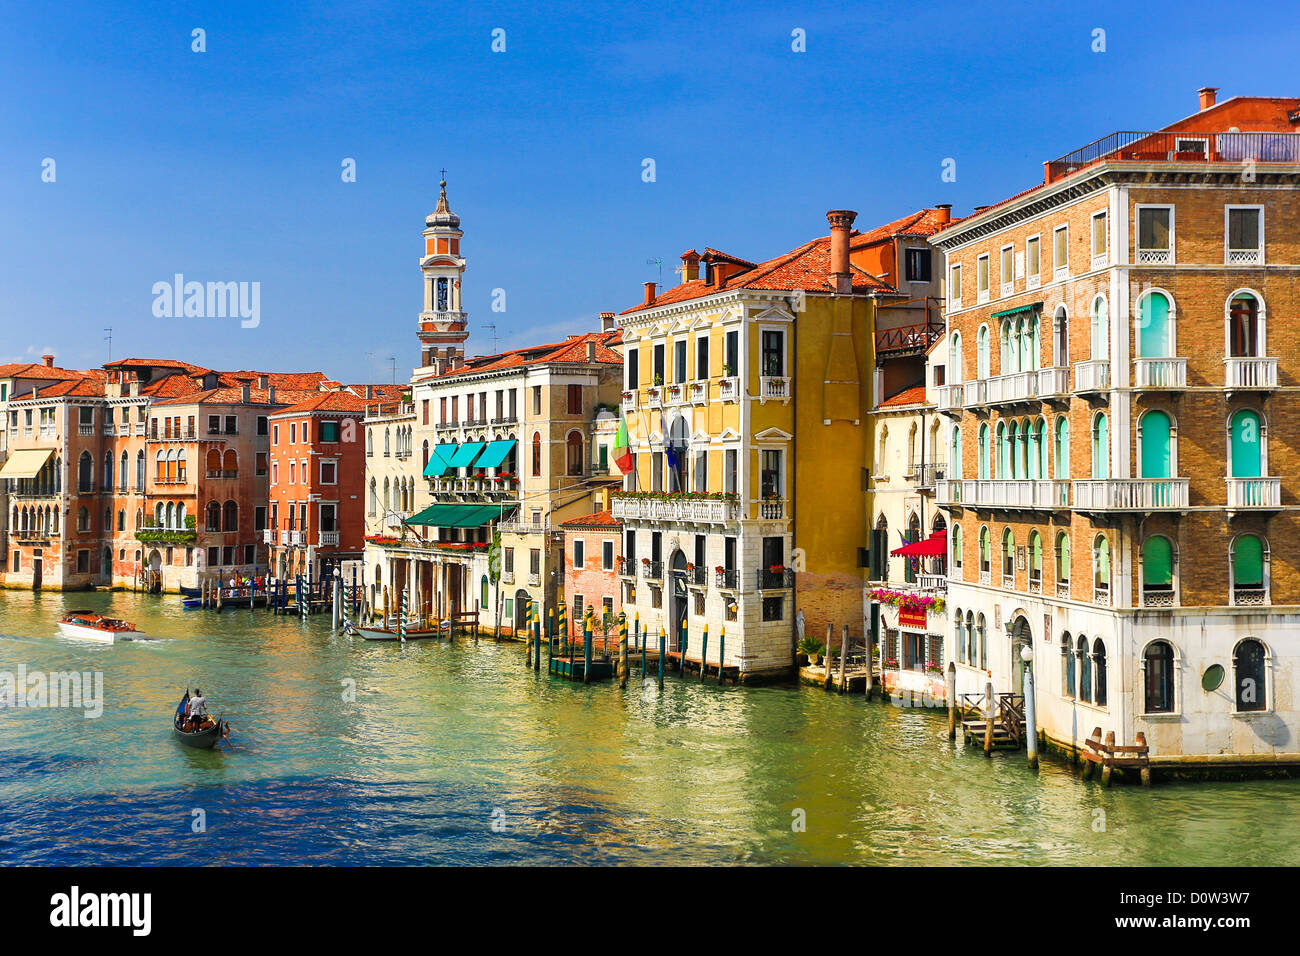 Italy, Europe, travel, Venice, buildings, Canal Grande, architecture, boats, campanile, colourful, colours, history, - Stock Image